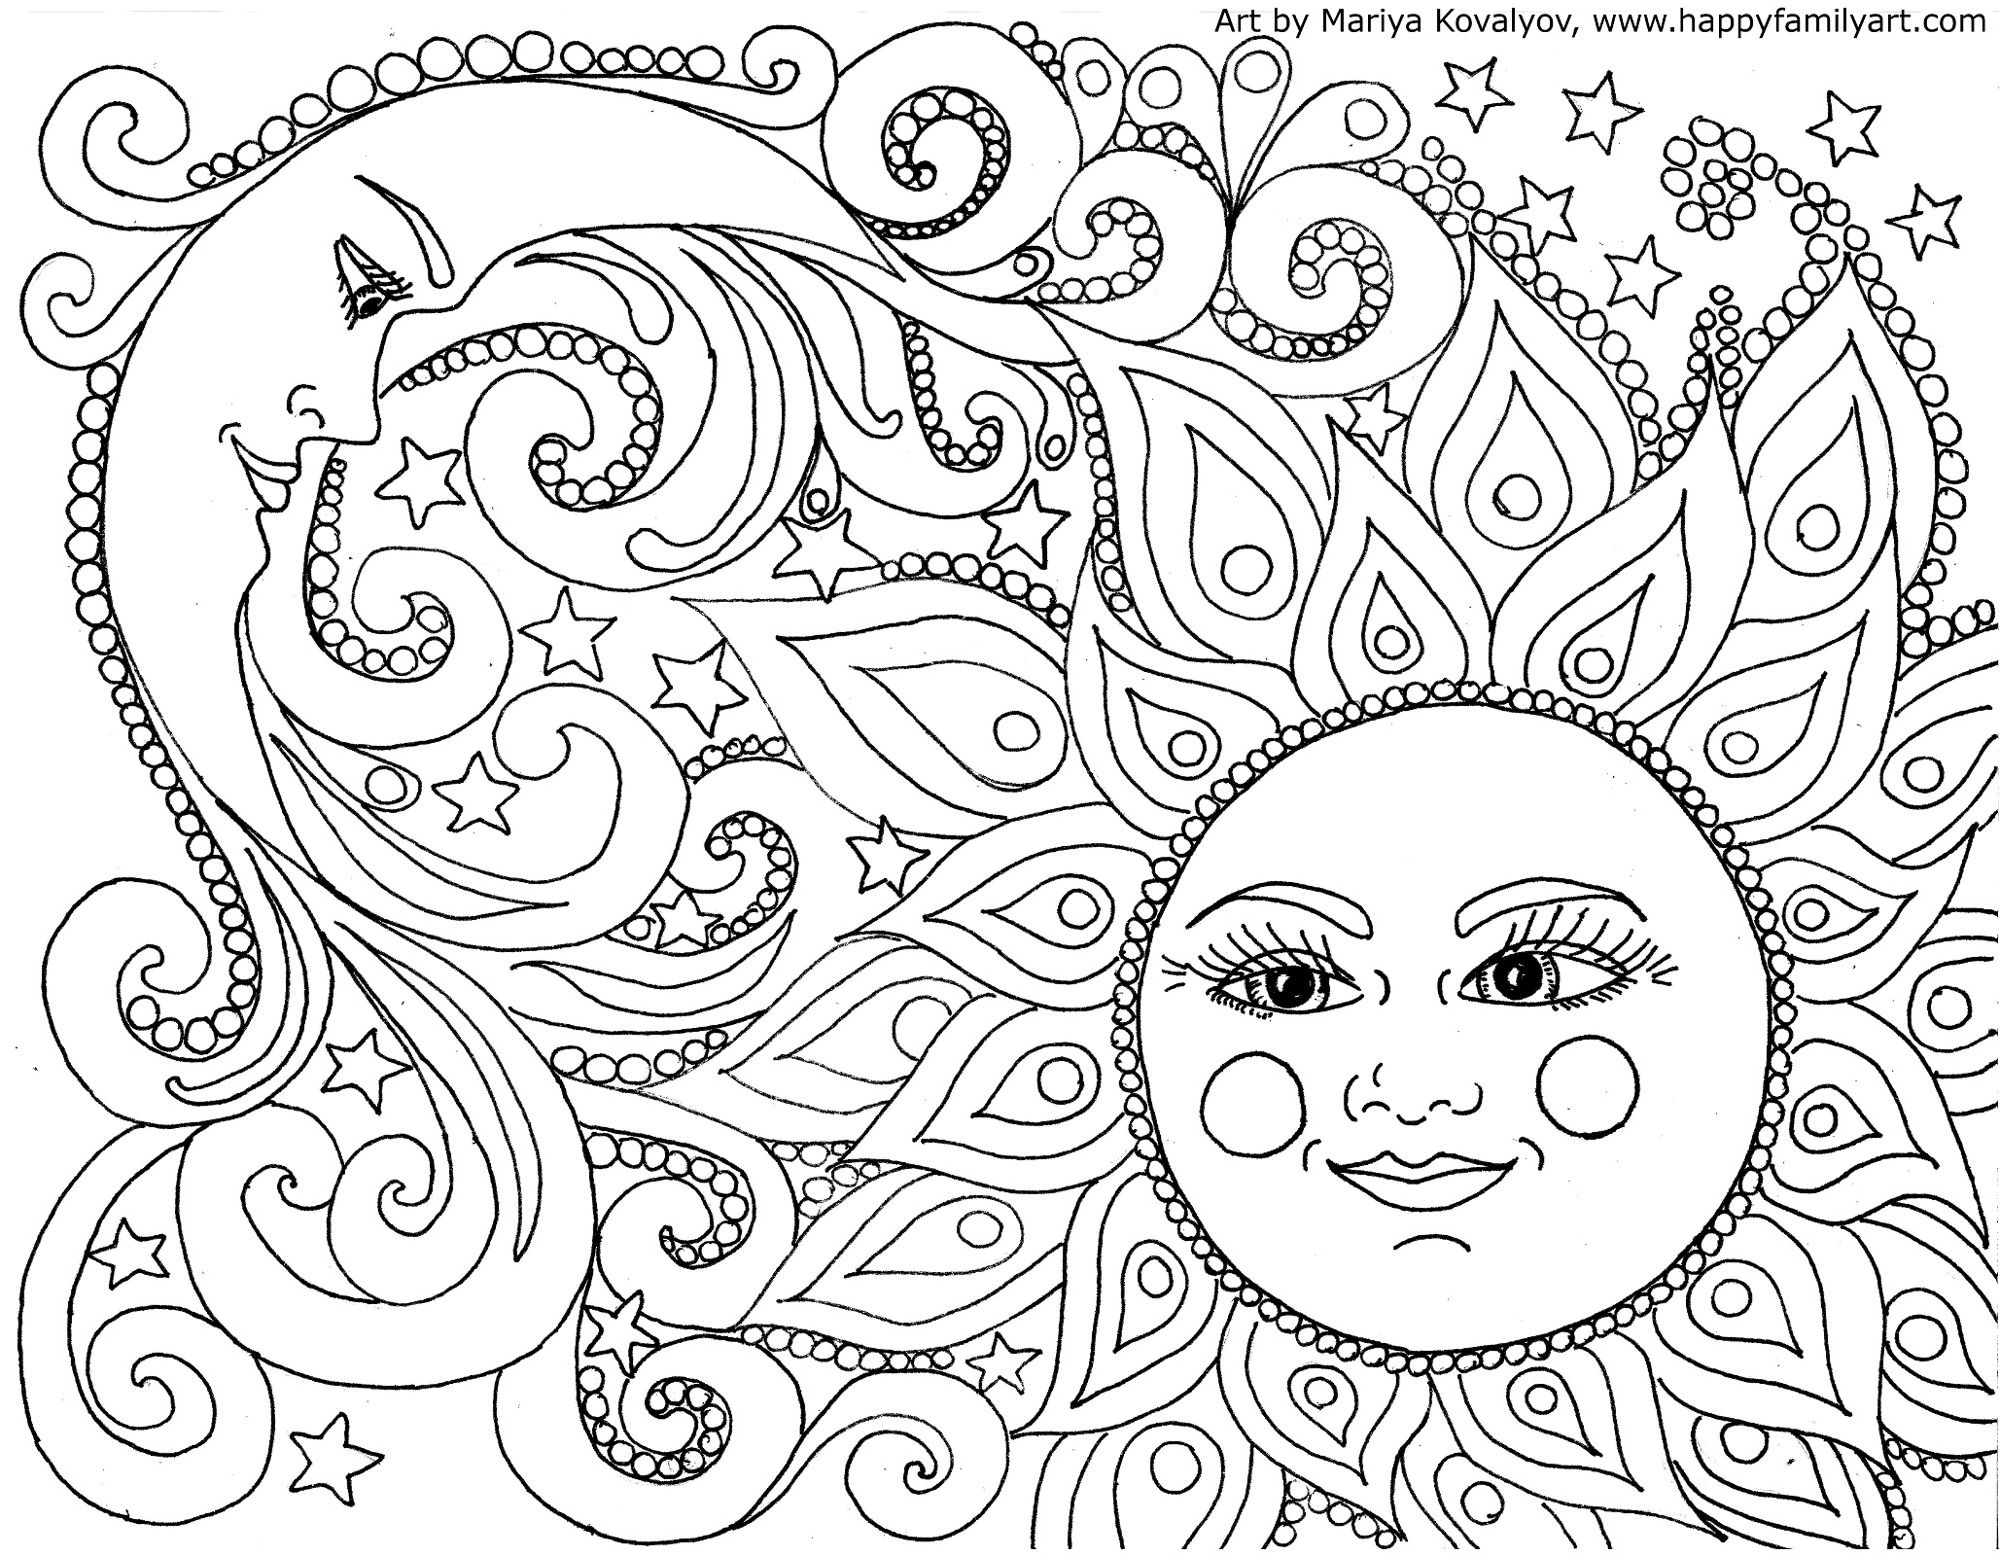 i made many great fun and original coloring pages color your heart out - Fun Coloring Sheets